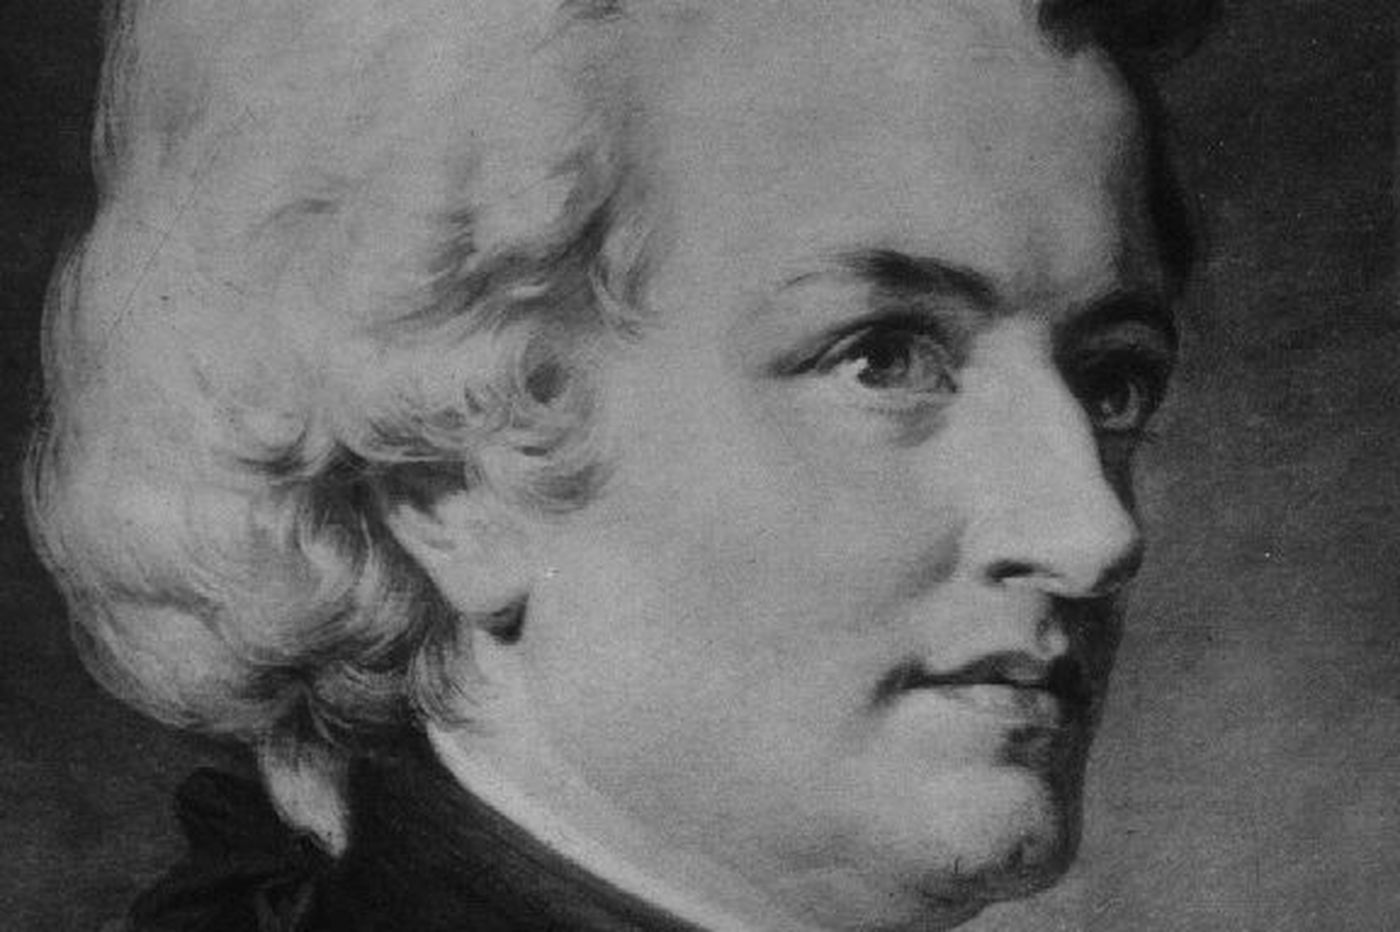 Love of Mozart led to a talented pianist and teacher, and a trusted friend